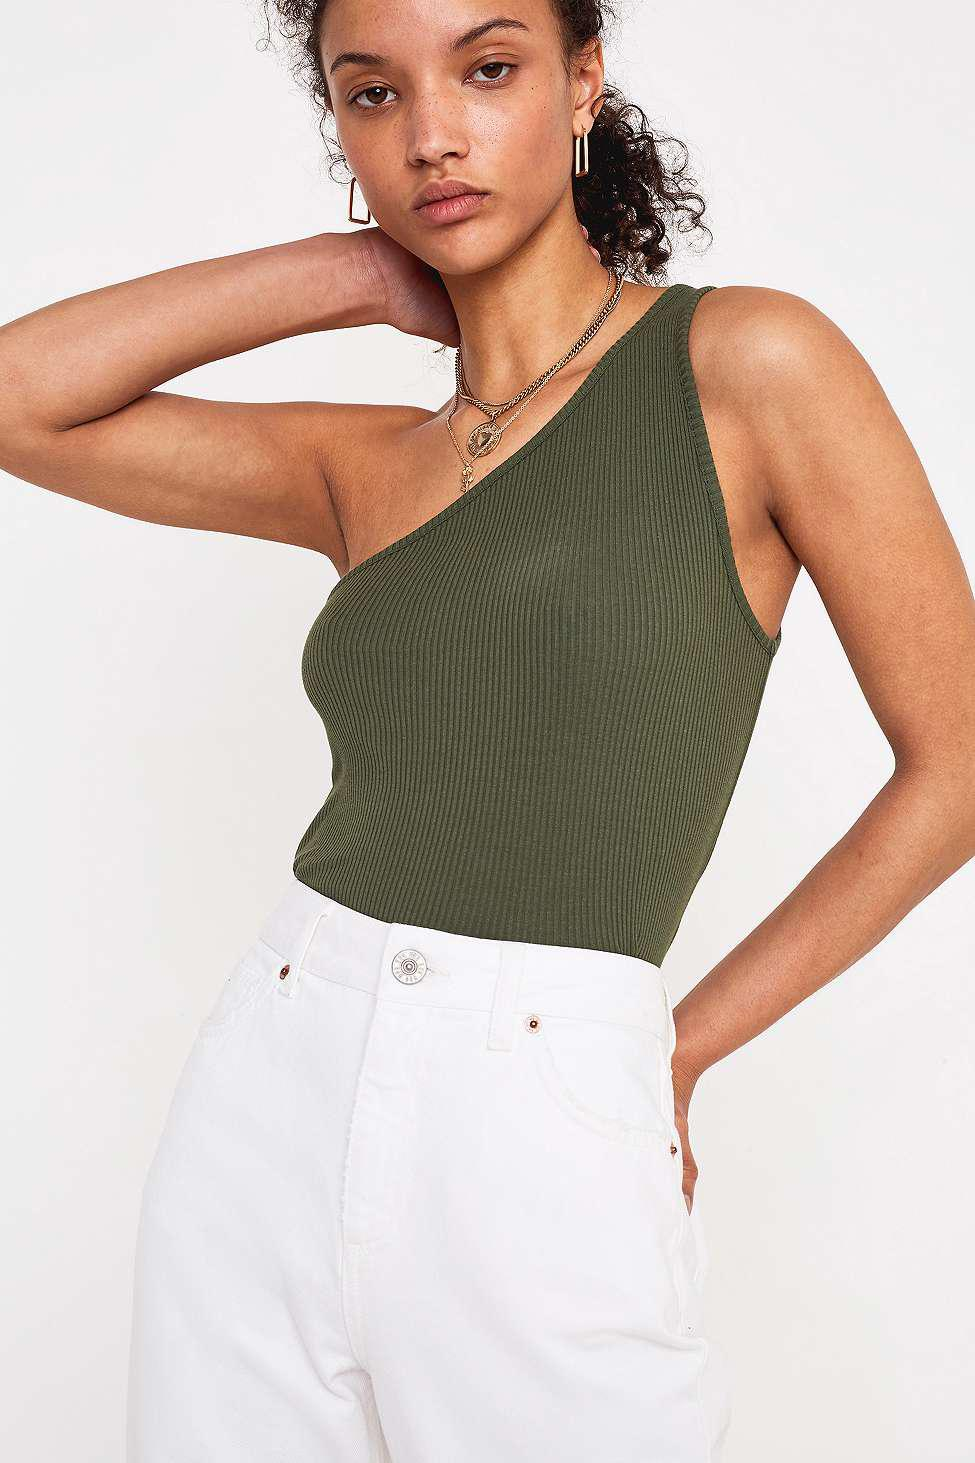 Urban Outfitters Uo Asymmetric Rib Cami - Womens Xs in Green - Lyst d0cf7cfd4